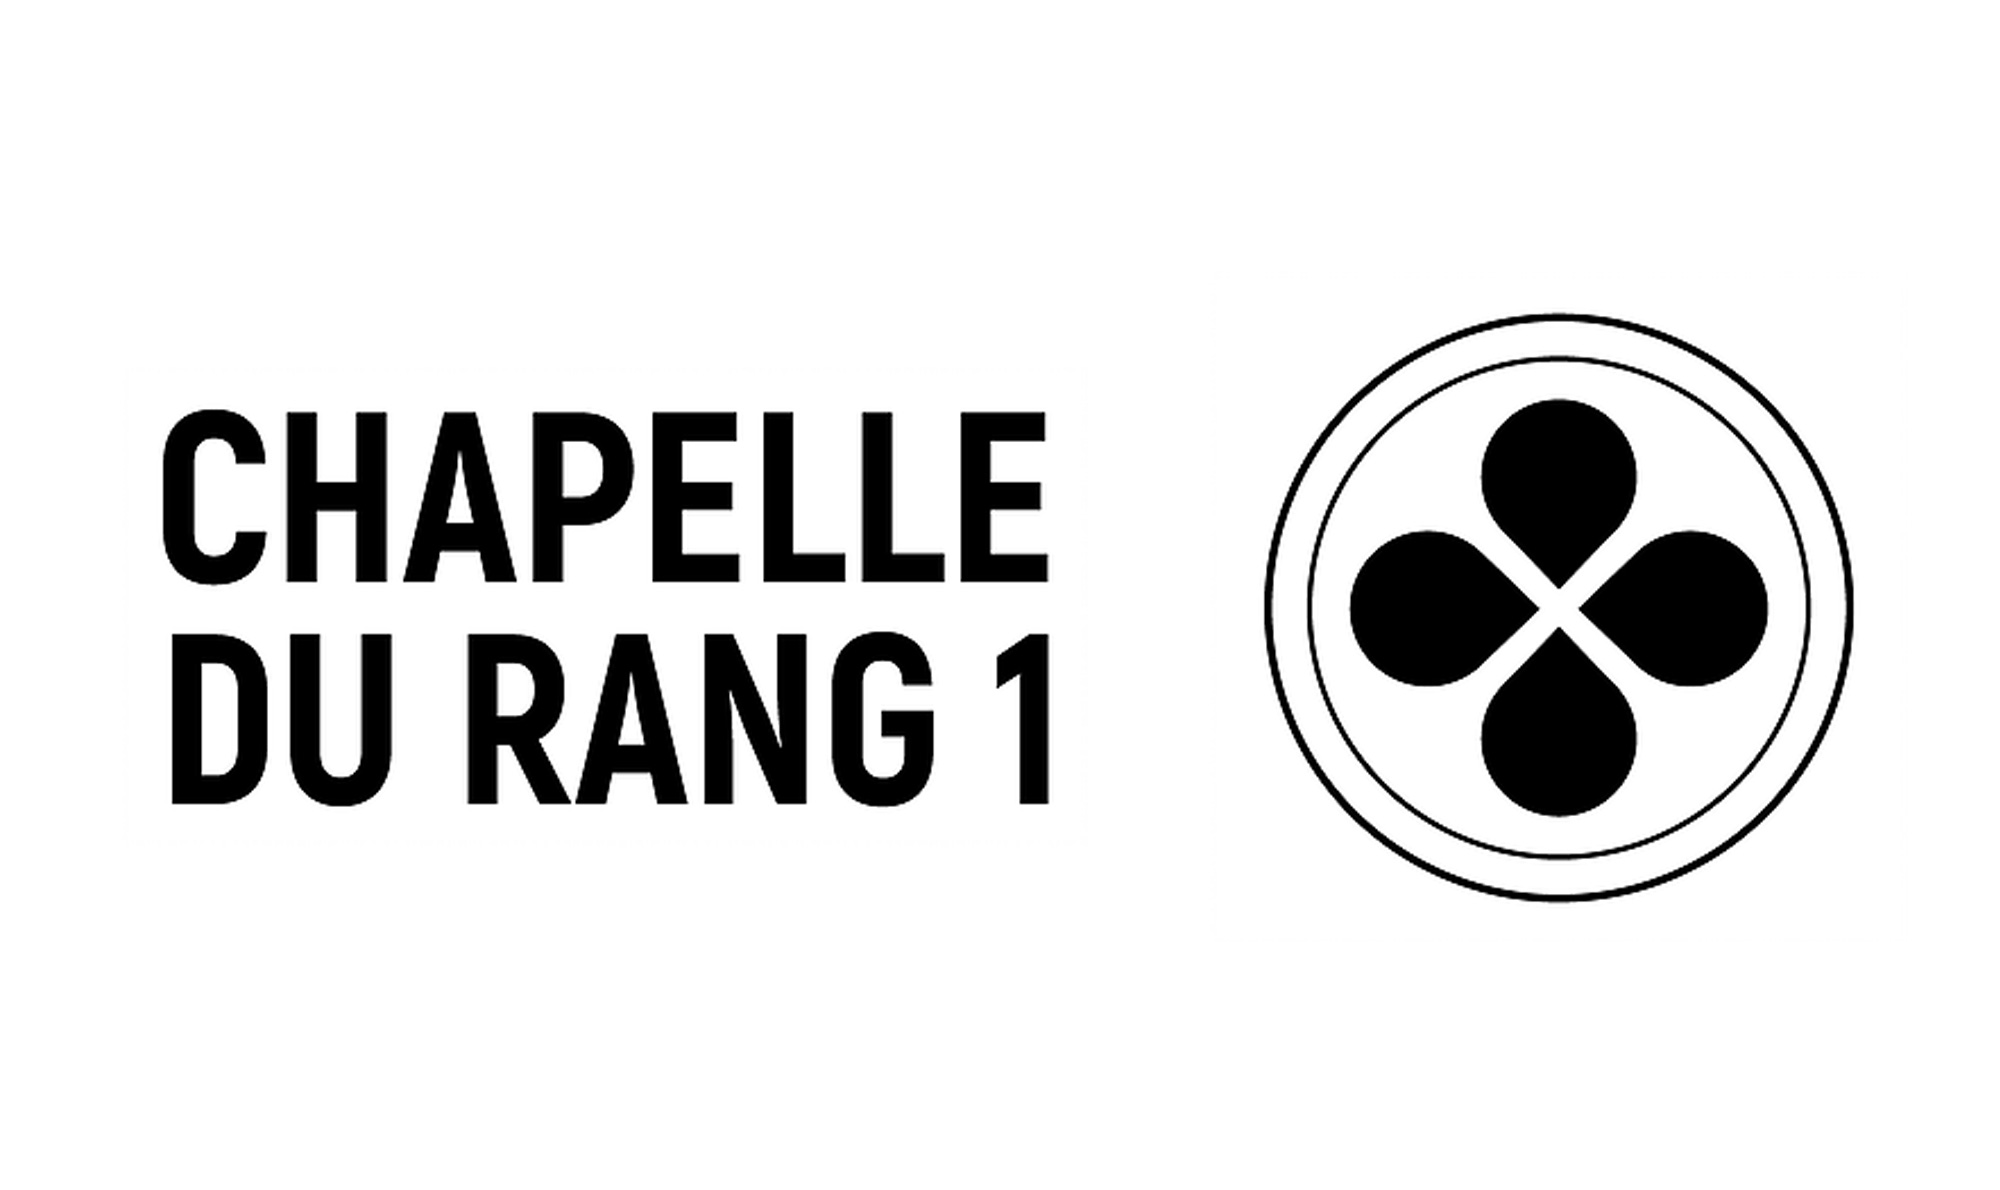 Chappelle rang1